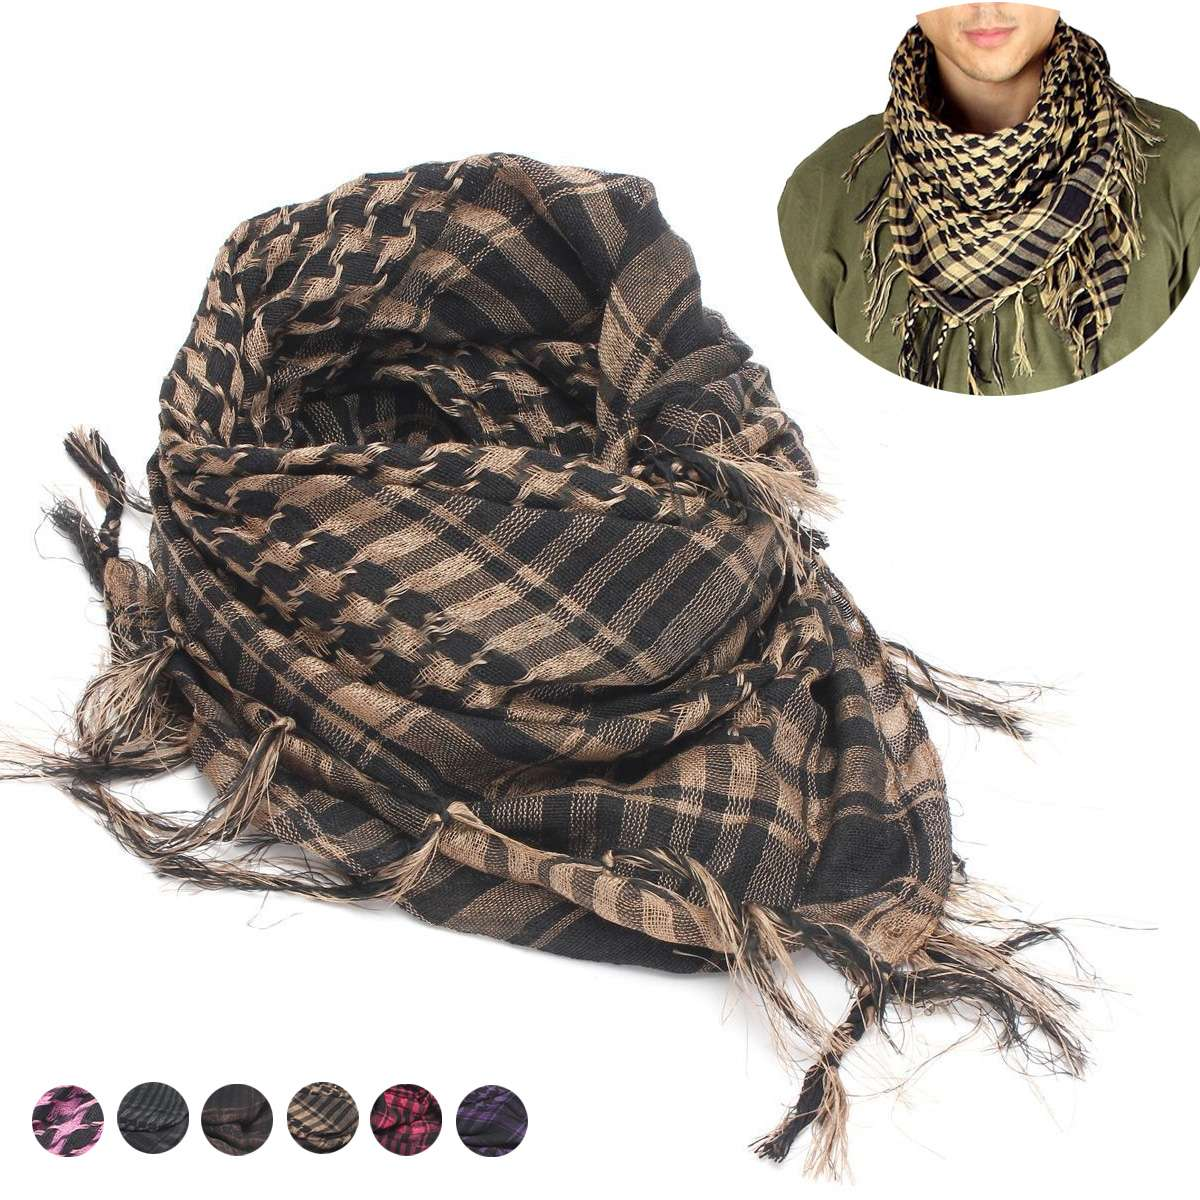 Shemagh Scarf Arab Desert Tactical Outdoor Women Unisex With Tassel